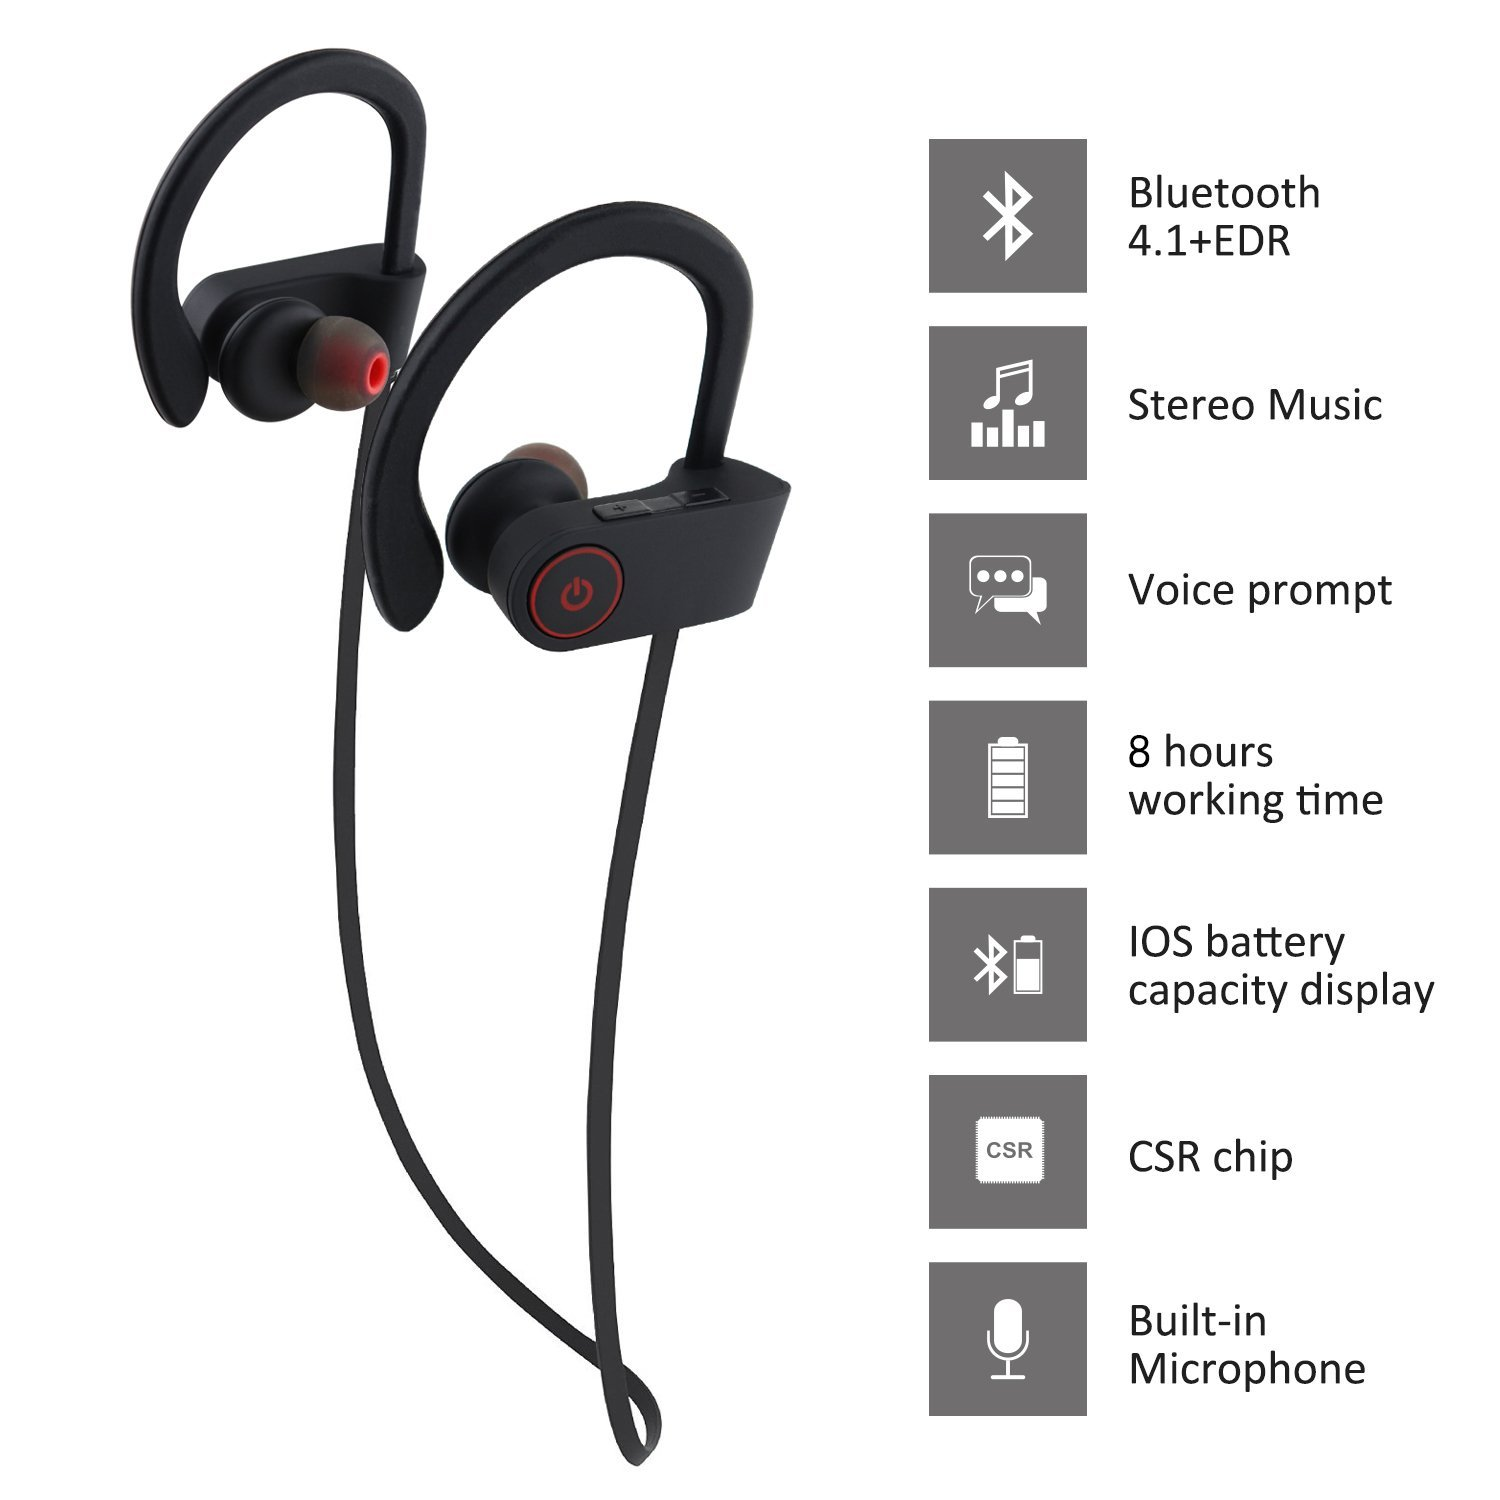 d5219e5564b Otium Bluetooth Headphones Best Wireless Sports Earphones w/ Mic IPX7  Waterproof HD Stereo Sweatproof In Ear Earbuds for Gym Running Workout 8  Hour Battery ...